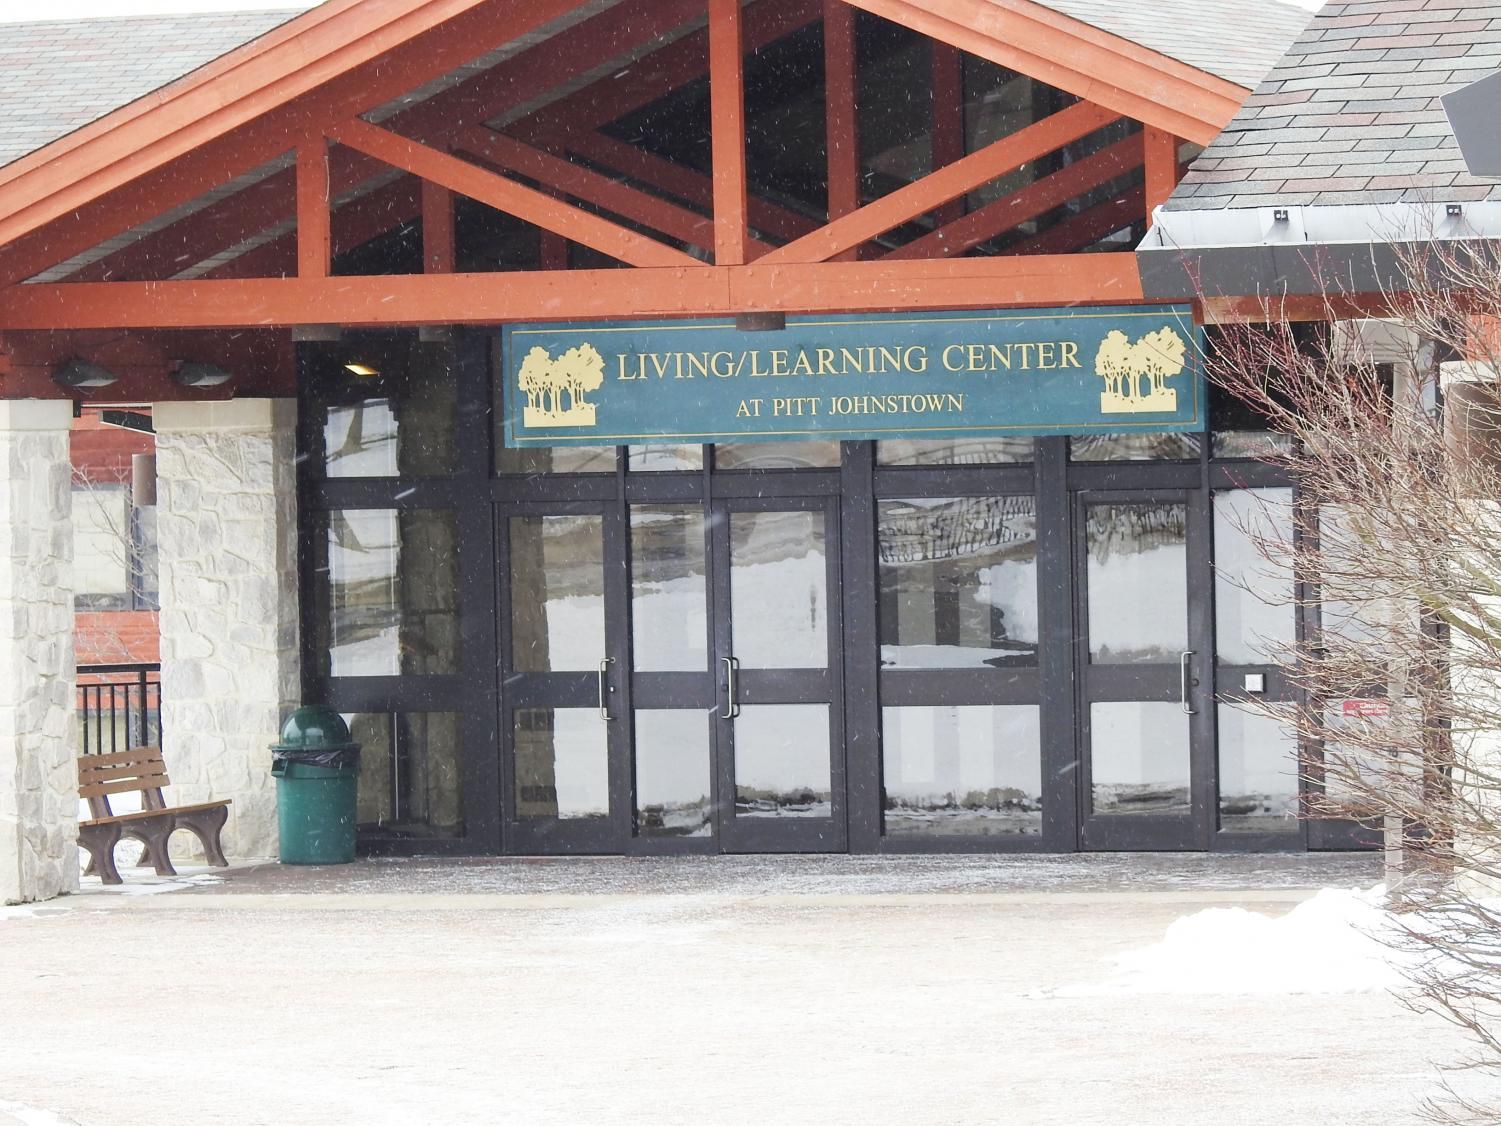 Pitt-Johnstown officials are planning to update the Living/Learning Center's showers, along with other renovations to the building, over summer break. Finance and Administration Vice President Amy Buxbaum said the renovation details are not finalized.